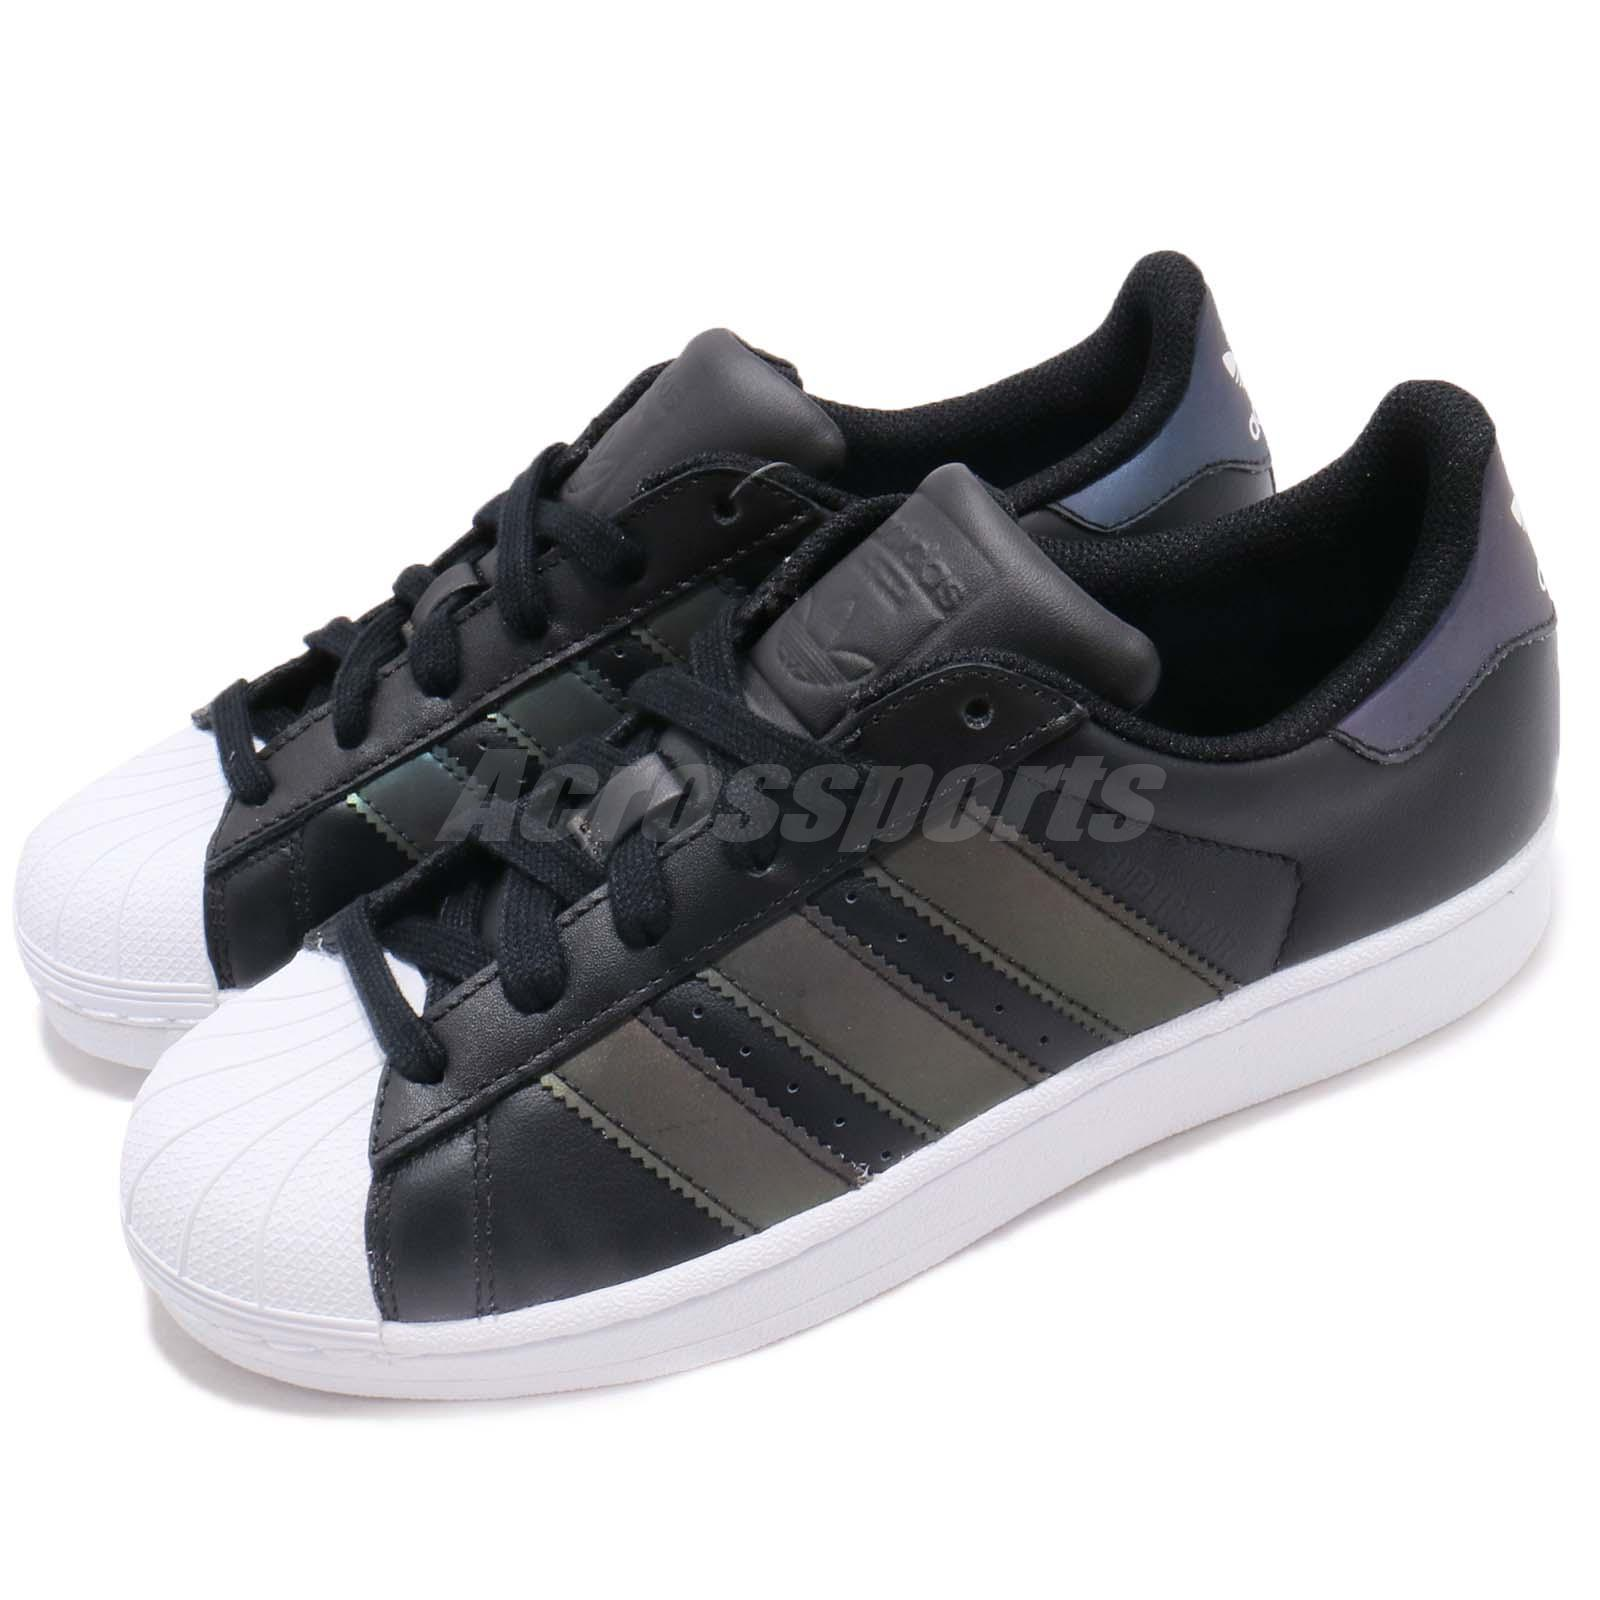 sale retailer ce582 c518c Details about adidas Originals Superstar J Black White Reflective Kid  Junior Women Shoe CQ2688